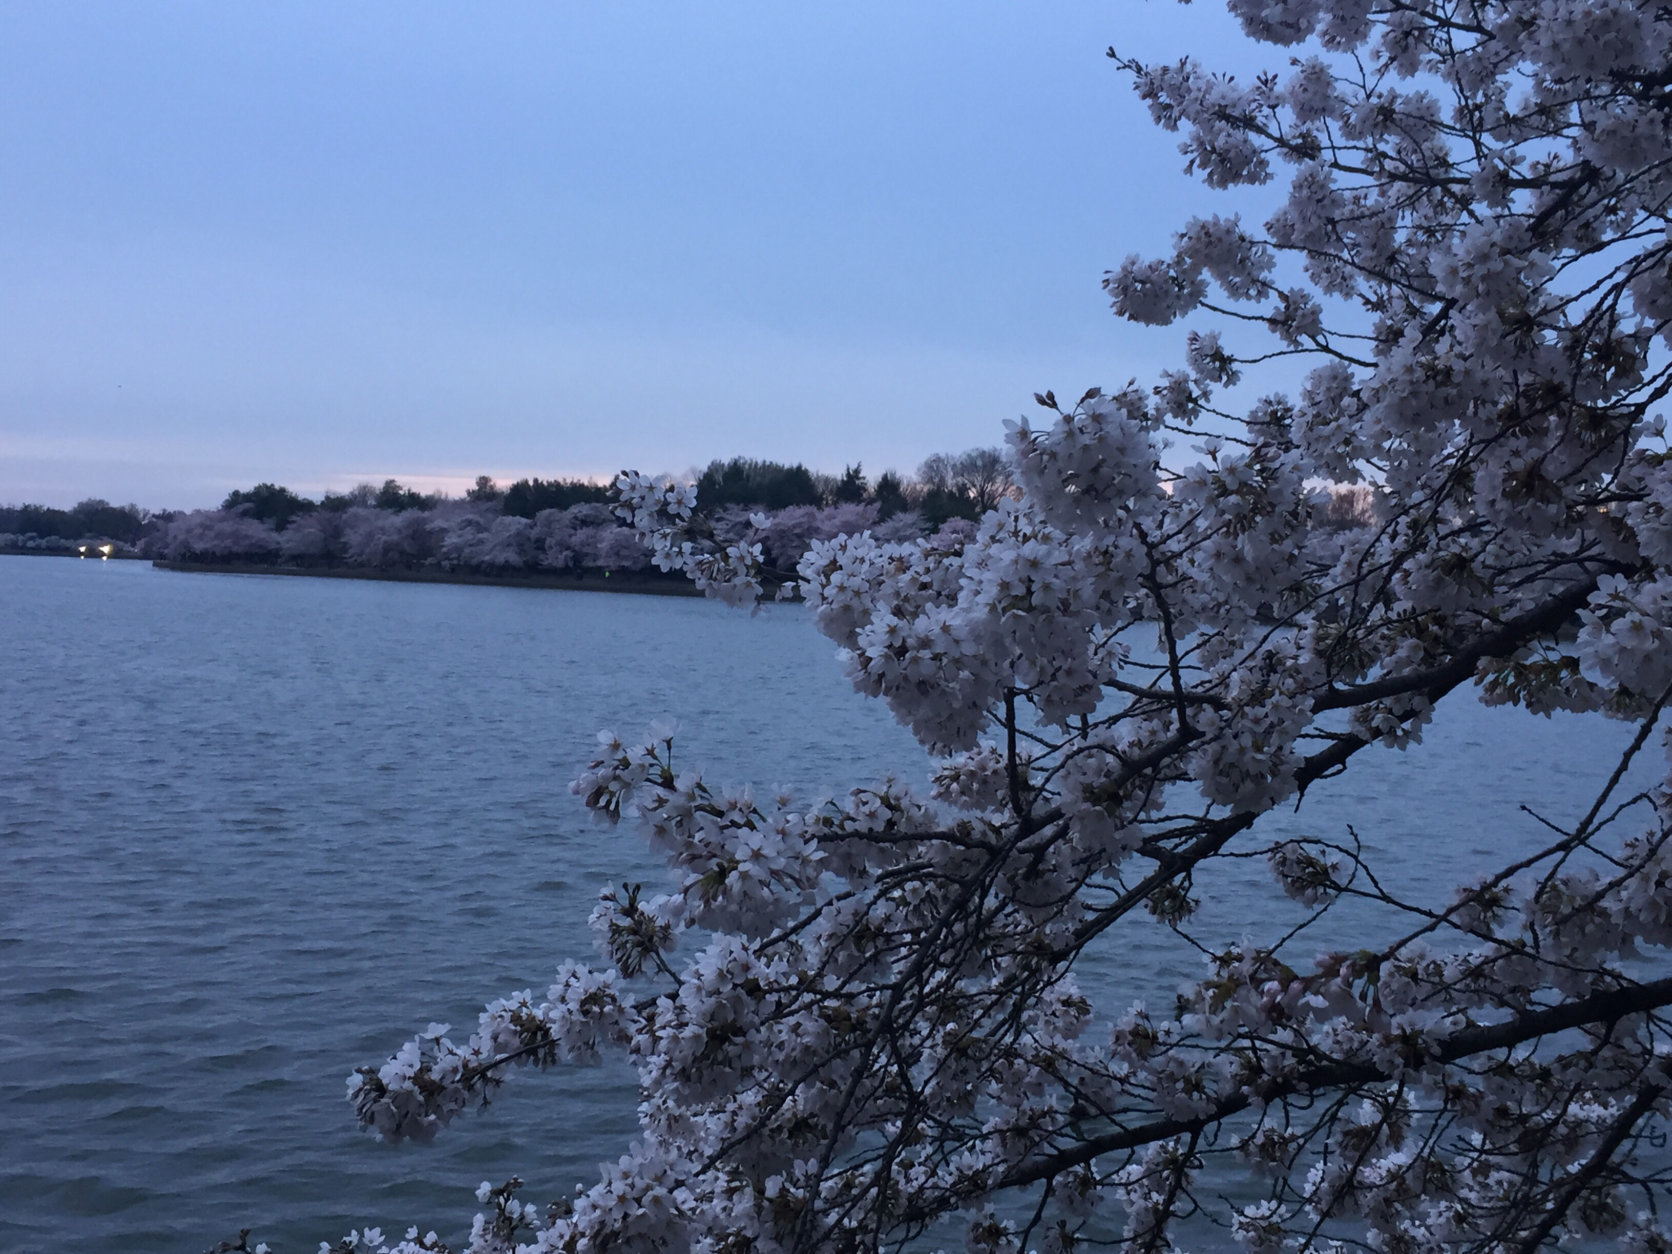 Cherry blossoms in full bloom at the Tidal Basin. (WTOP/John Domen)